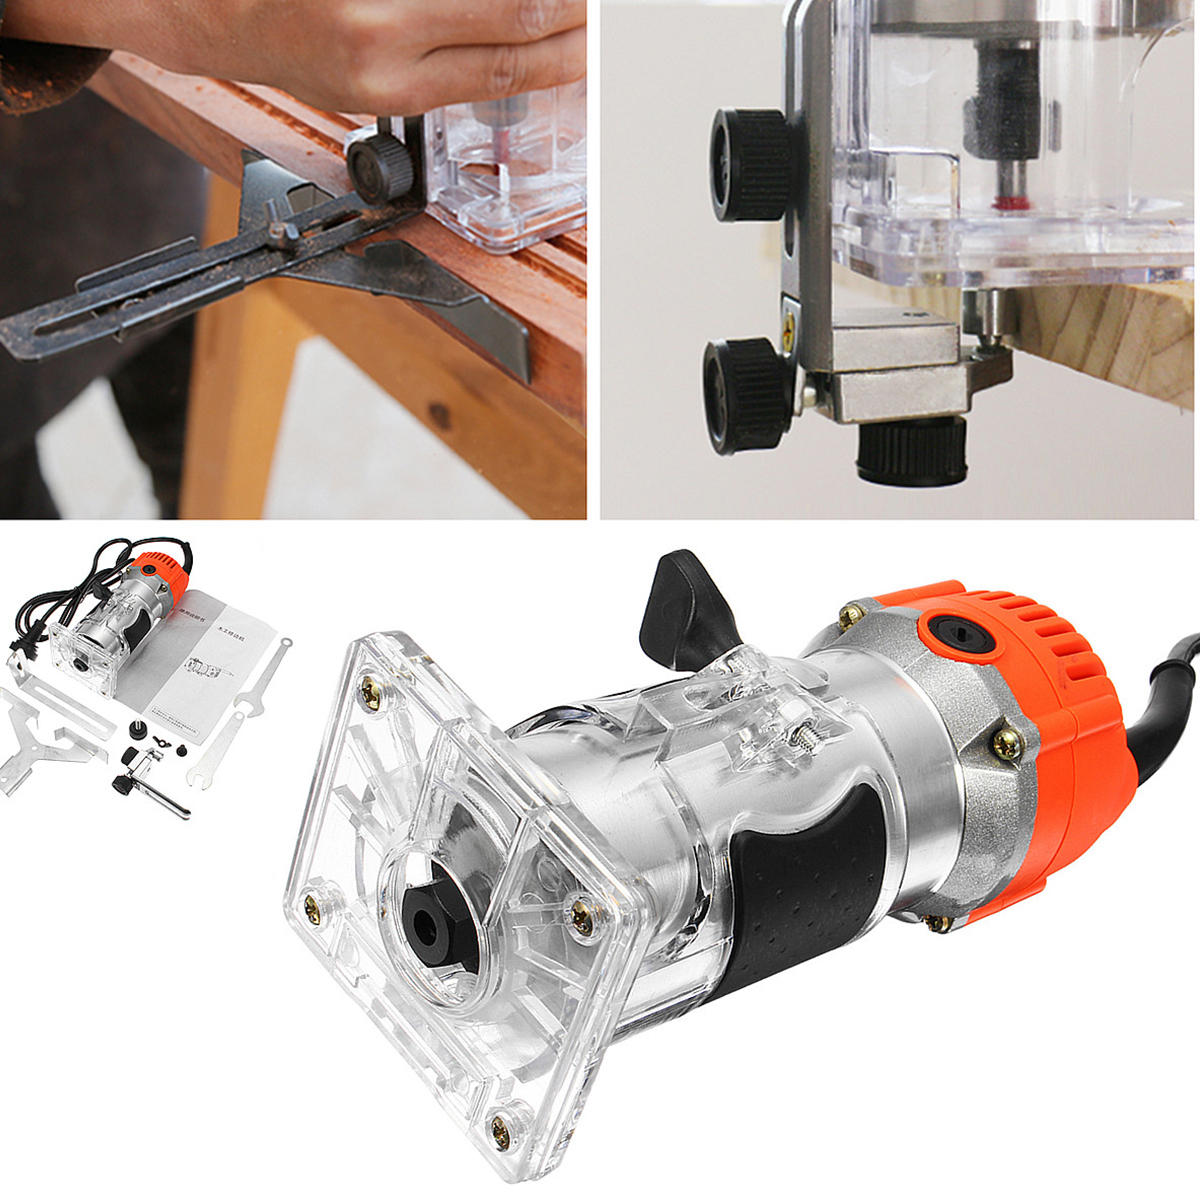 1200W 220V 6.35mm 1/4 Electric Hand Trimmer Wood Laminate Palm Router Joiner Tool